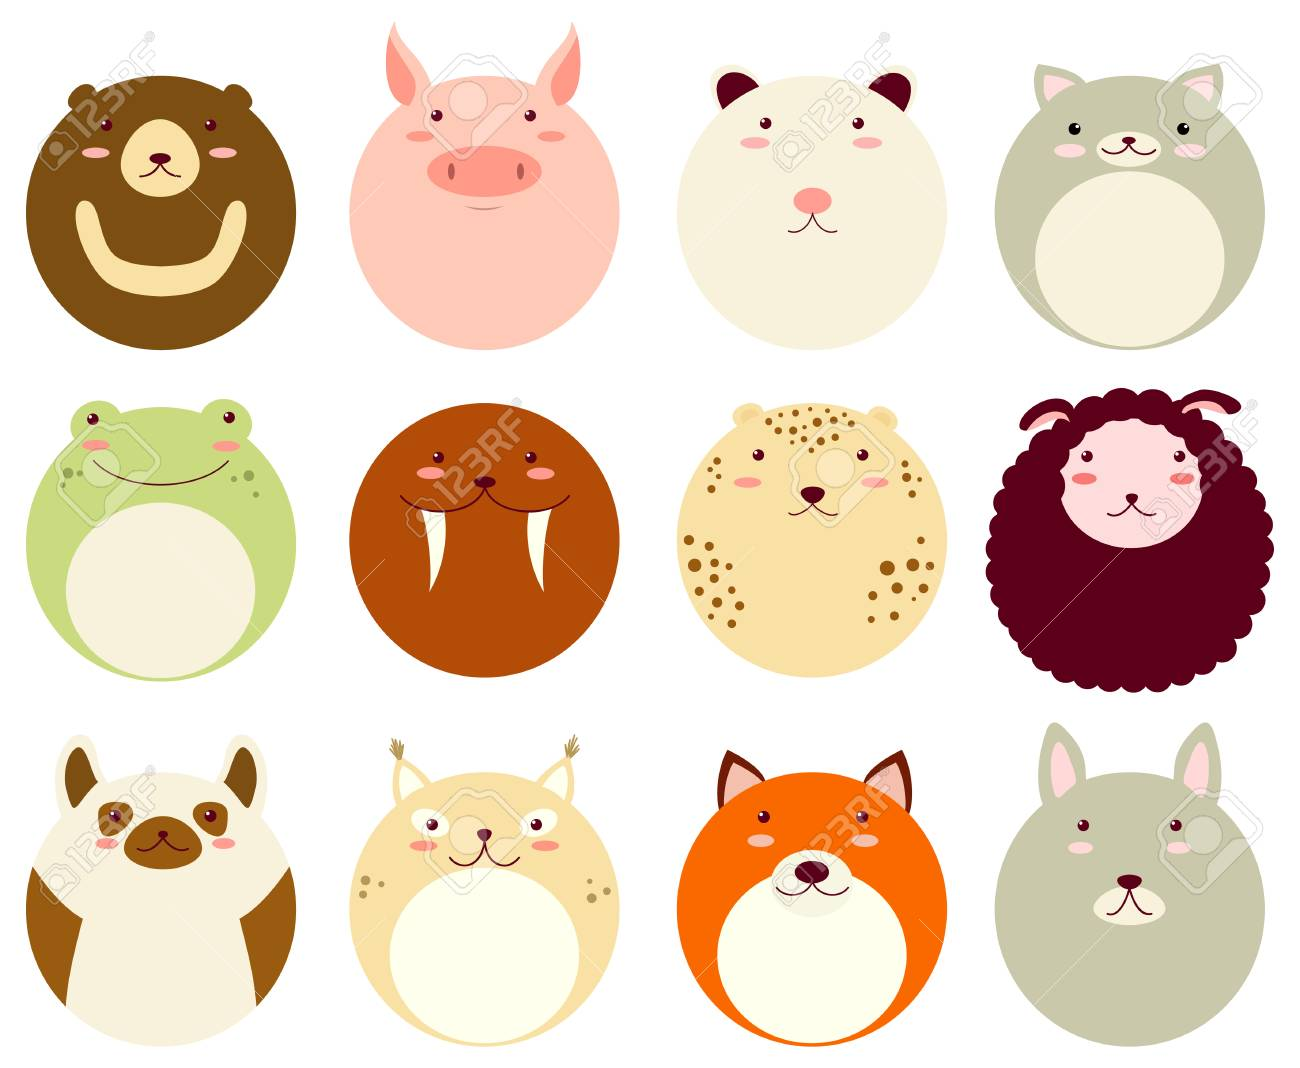 Image of: Photos Collection Of Round Avatars Icons With Faces Of Cute Animals Vector Icons Set In Flat 123rfcom Collection Of Round Avatars Icons With Faces Of Cute Animals